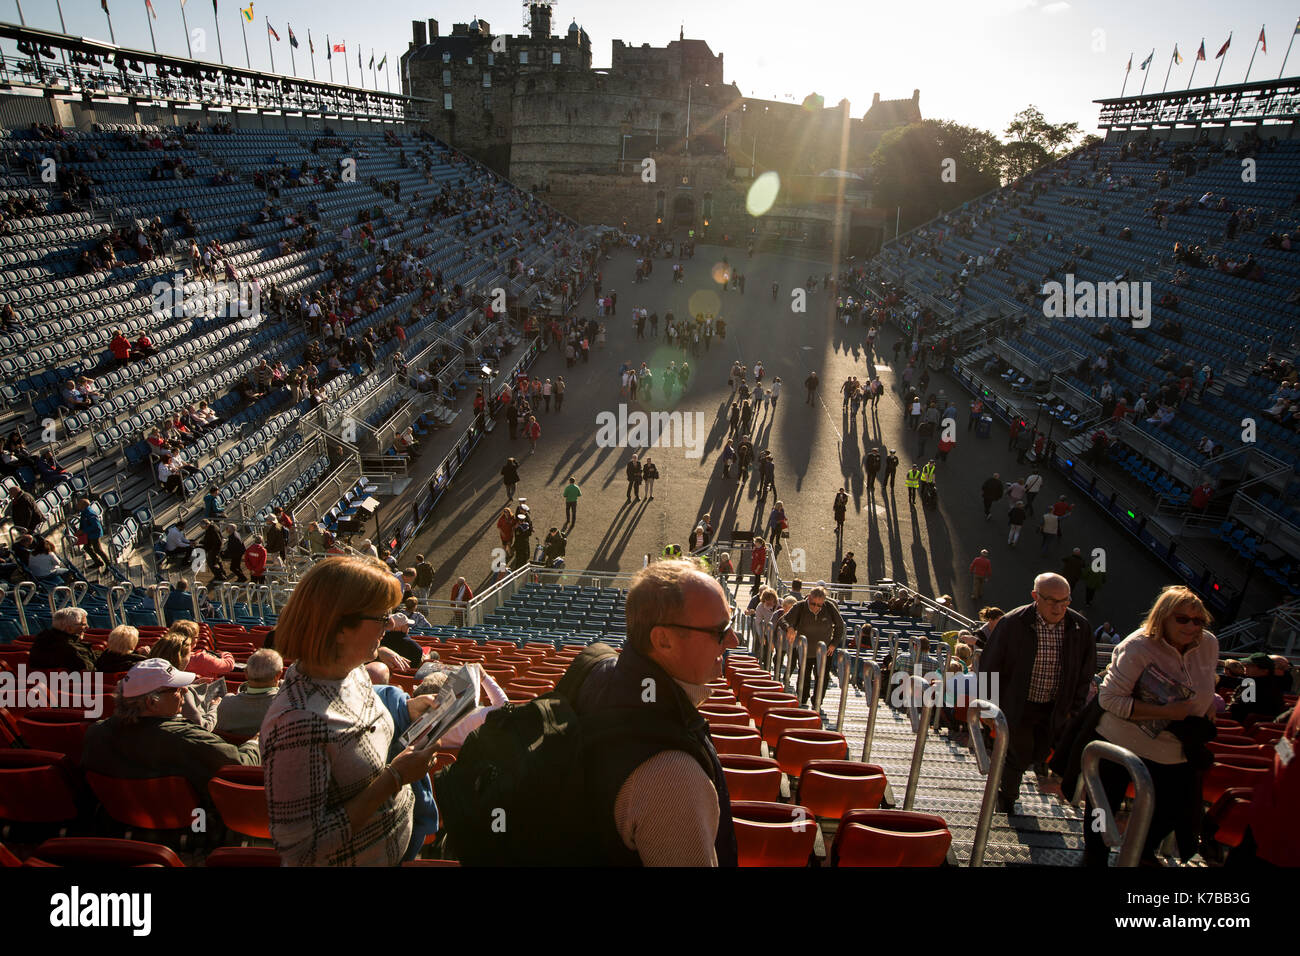 Edinburgh Royal Tattoo in front of Edinburgh Castle, in Edinburgh, in Scotland, on 15 September 2017. Stock Photo